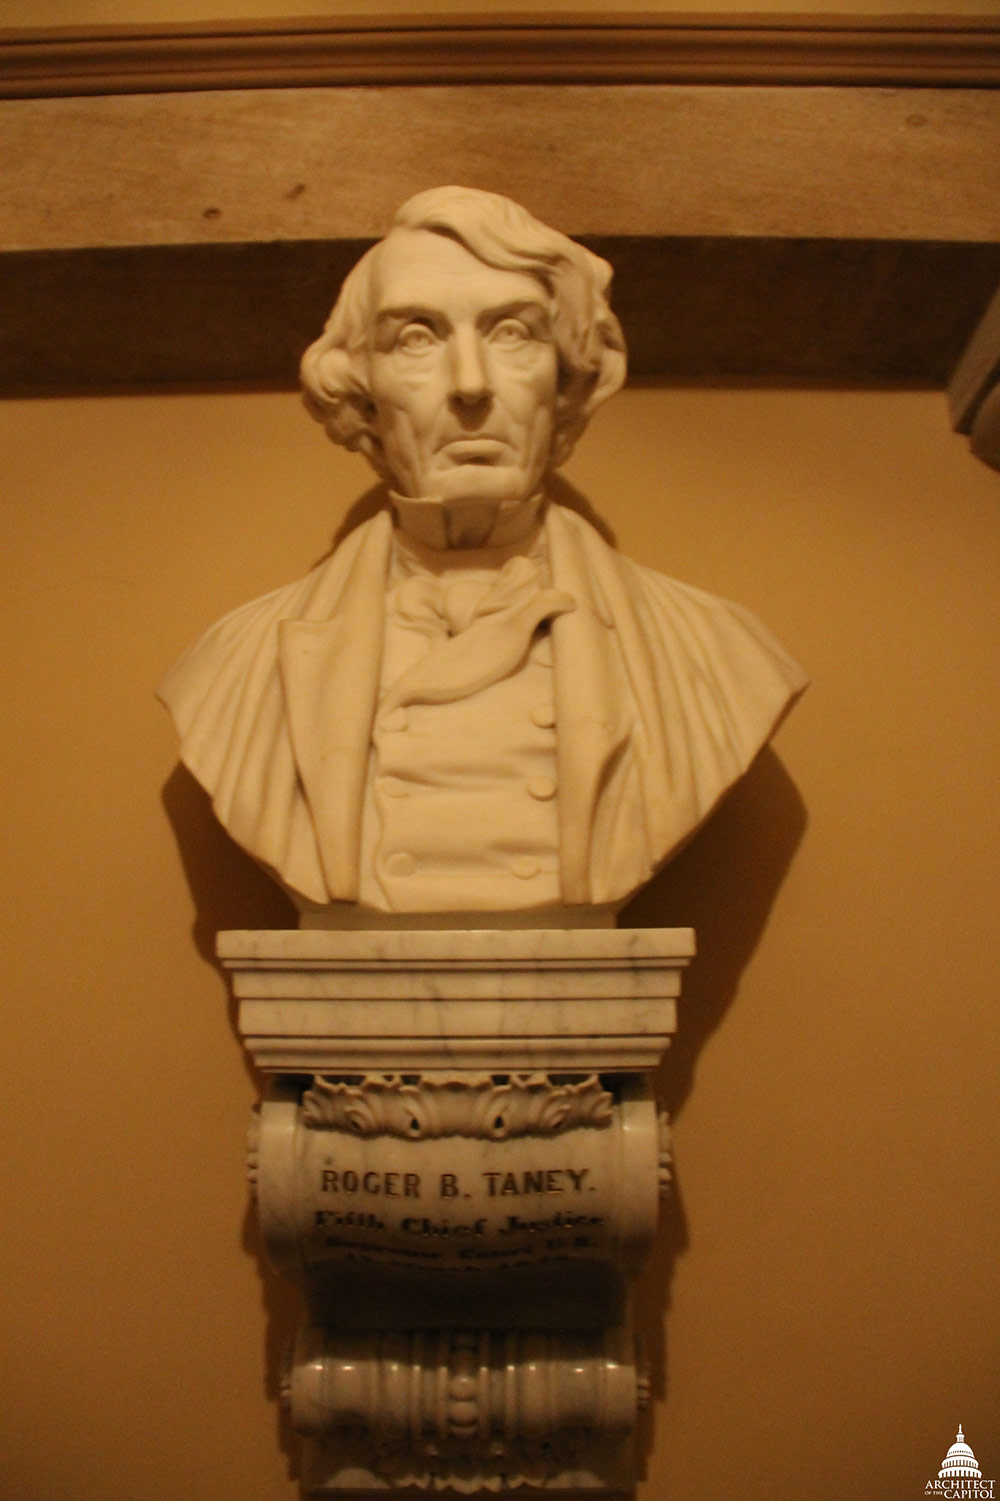 Bust of Roger B. Taney in the Old Supreme Court Chamber of the U.S. Capitol